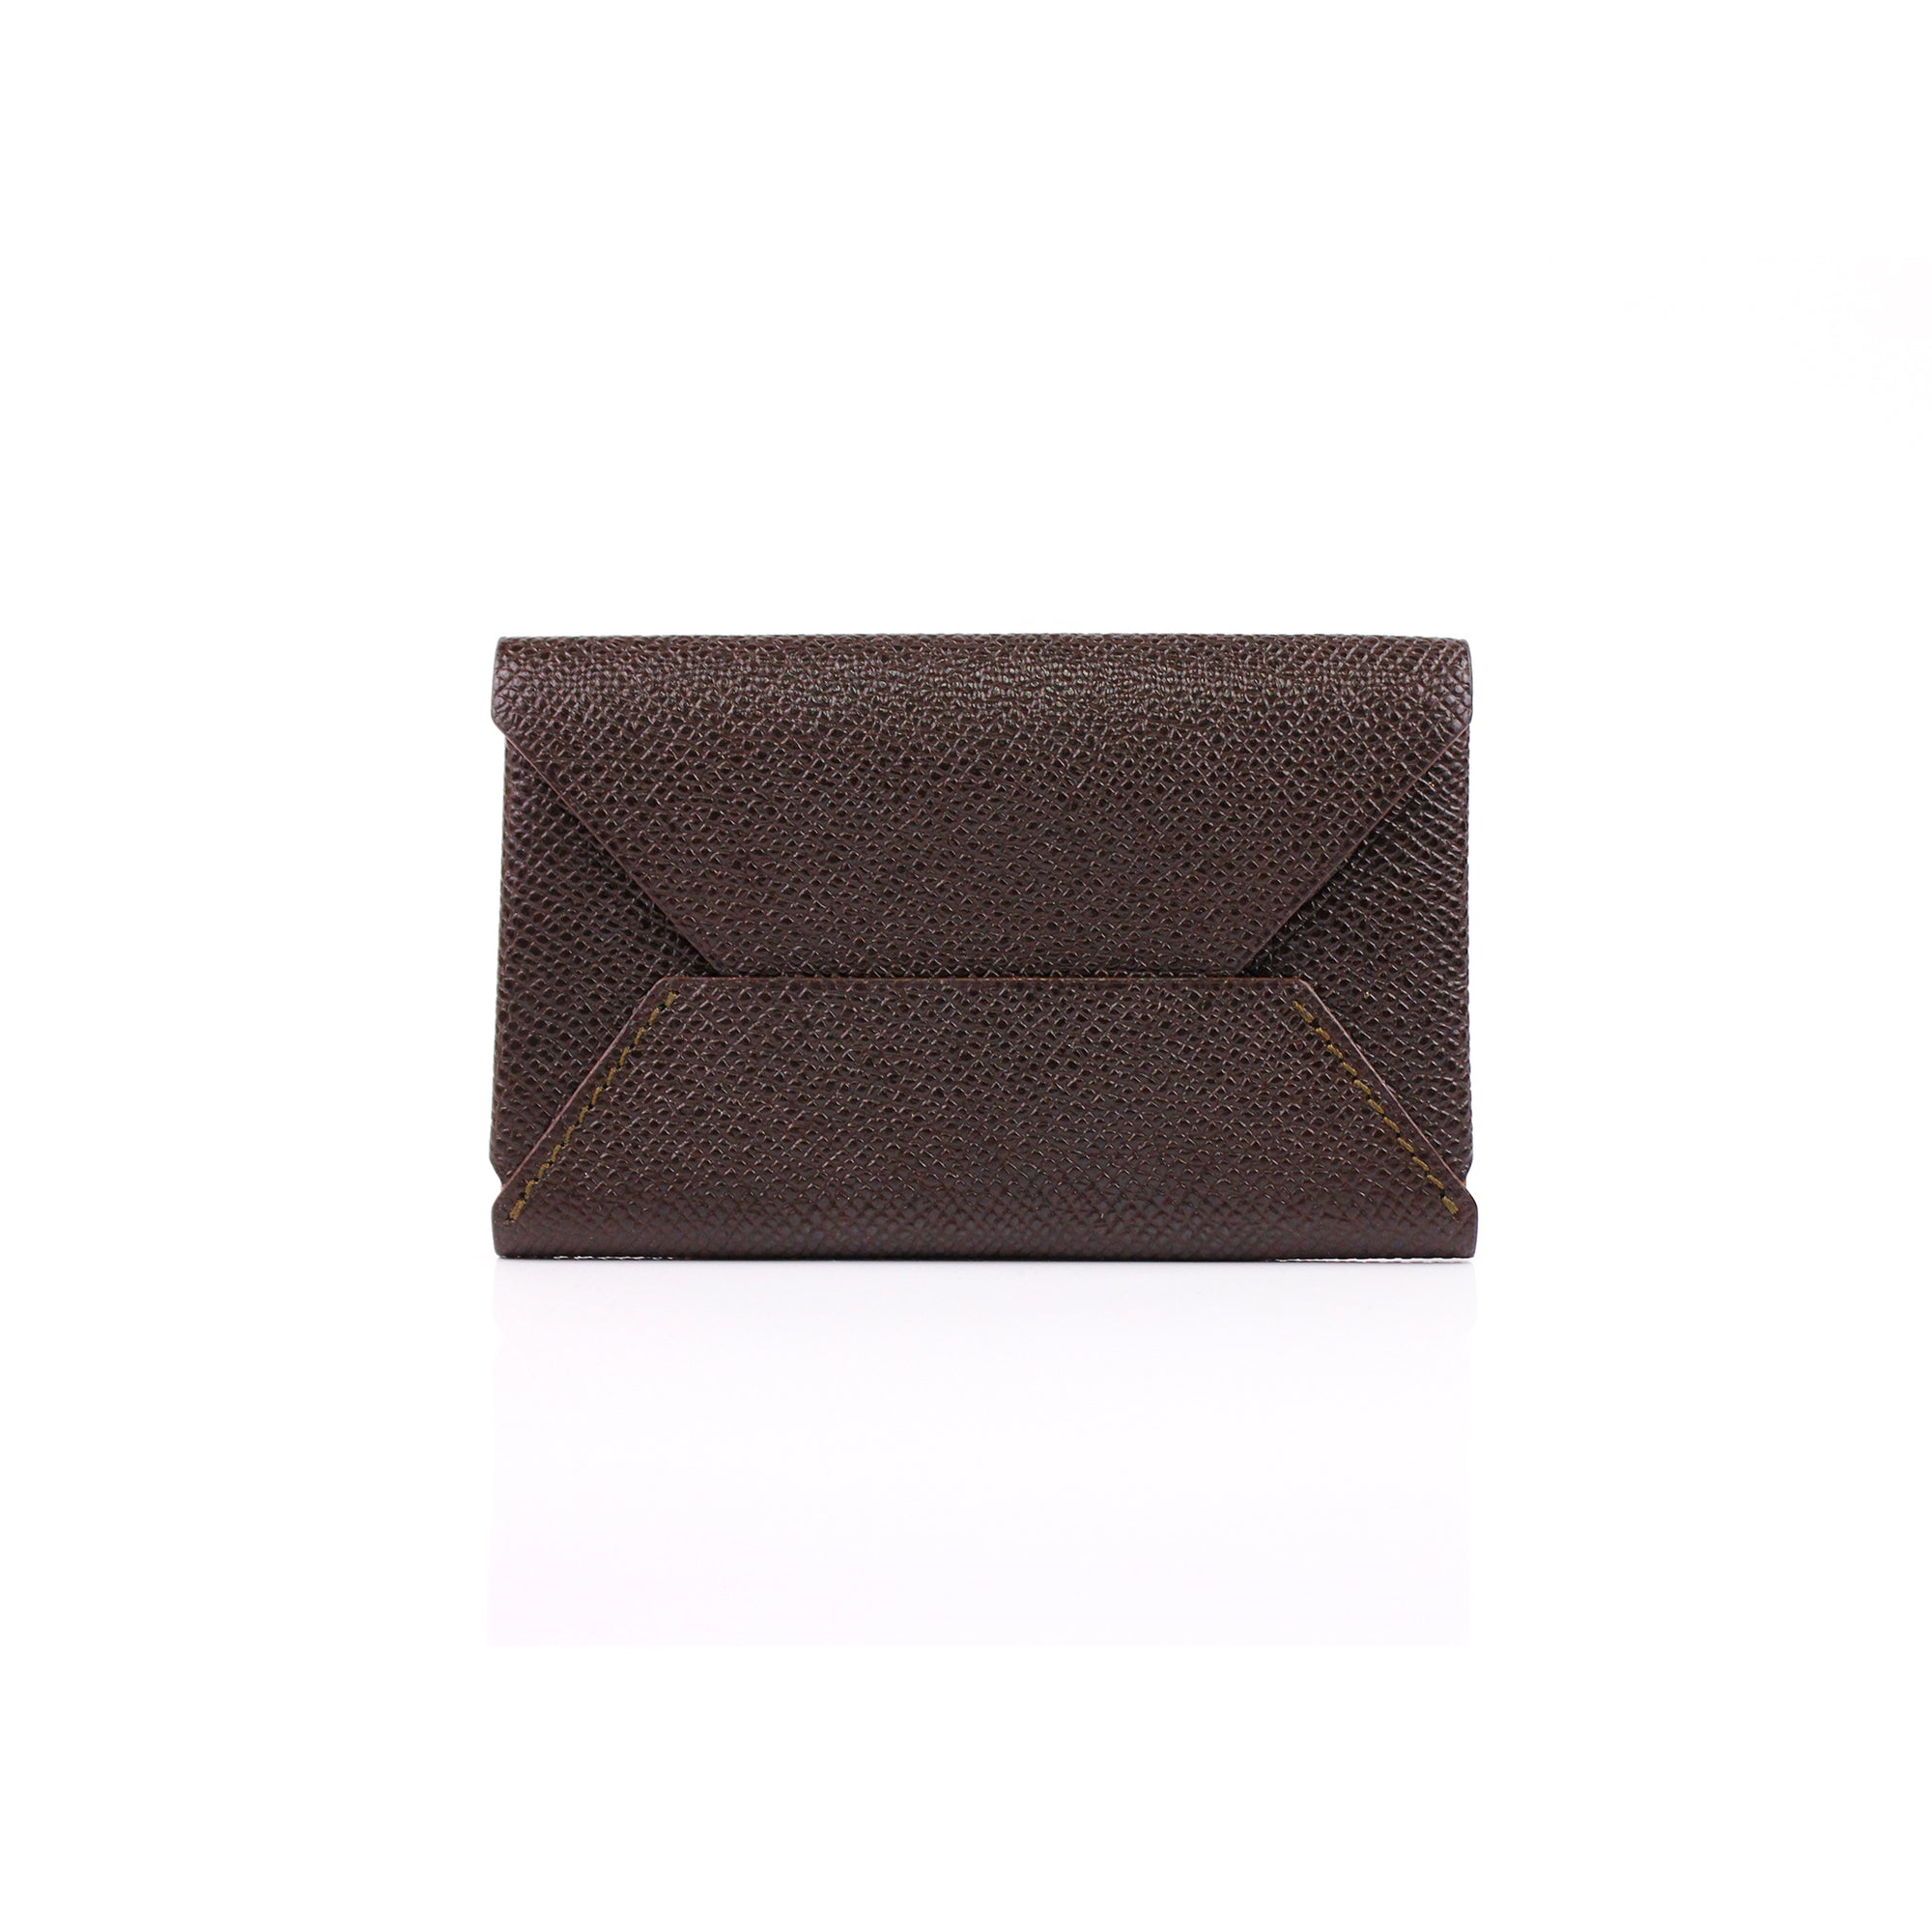 EX ENVELOPE CARD CASE 16001 DBR